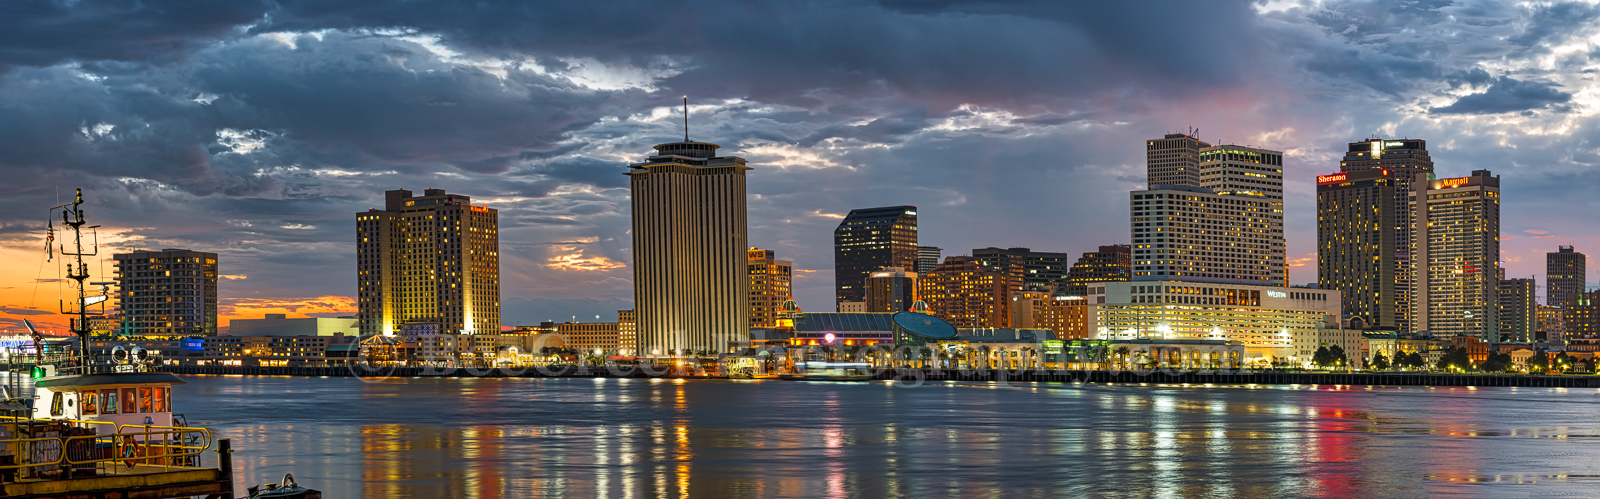 New Orleans, skyline, panorama, pano, cityscape, downtown, high rise, buildings, shoreline, city, dusk, , New Orleans cityscapes, Louisiana, tourist, World War Museum, Art,  Aquarim, riverboat, rides,